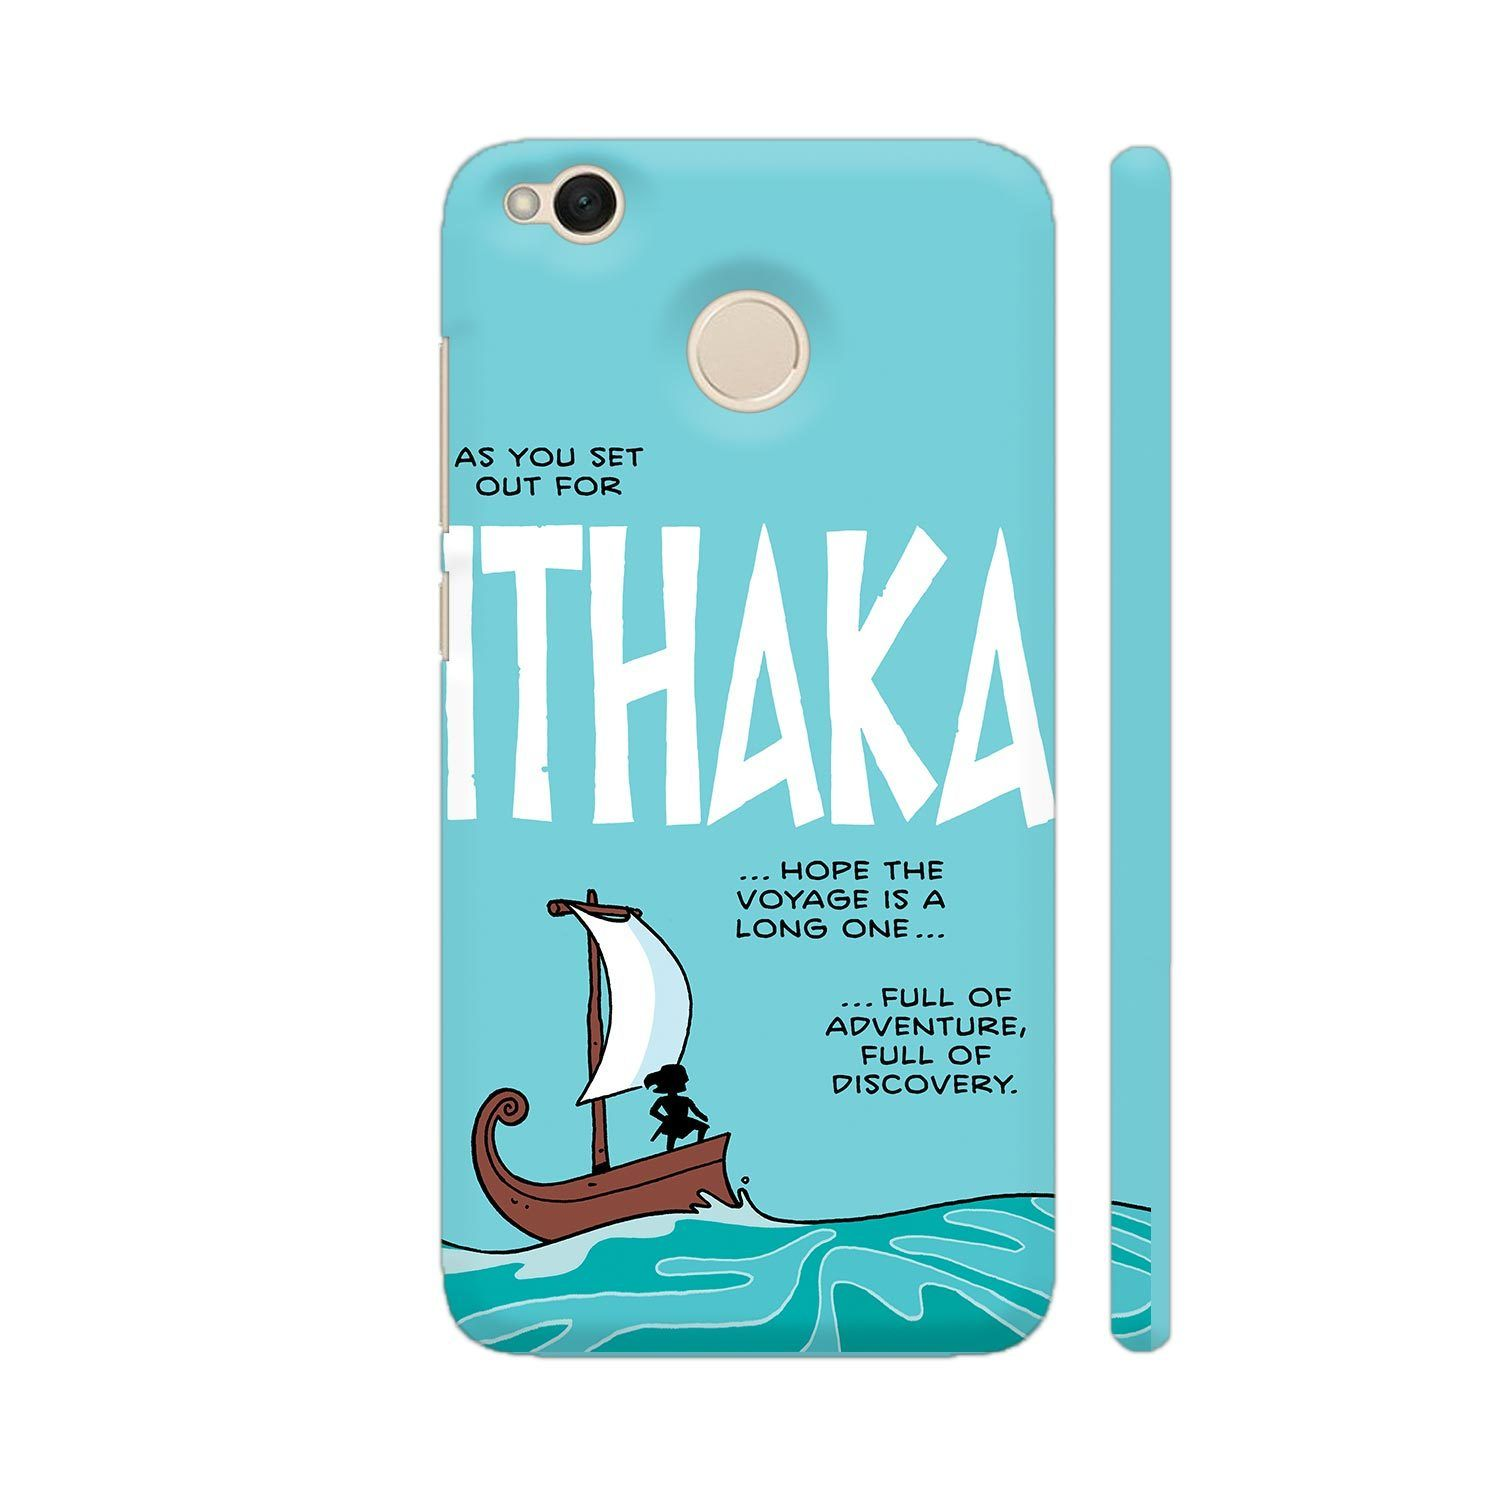 Cool new product Ithaka Xiaomi Red Check out